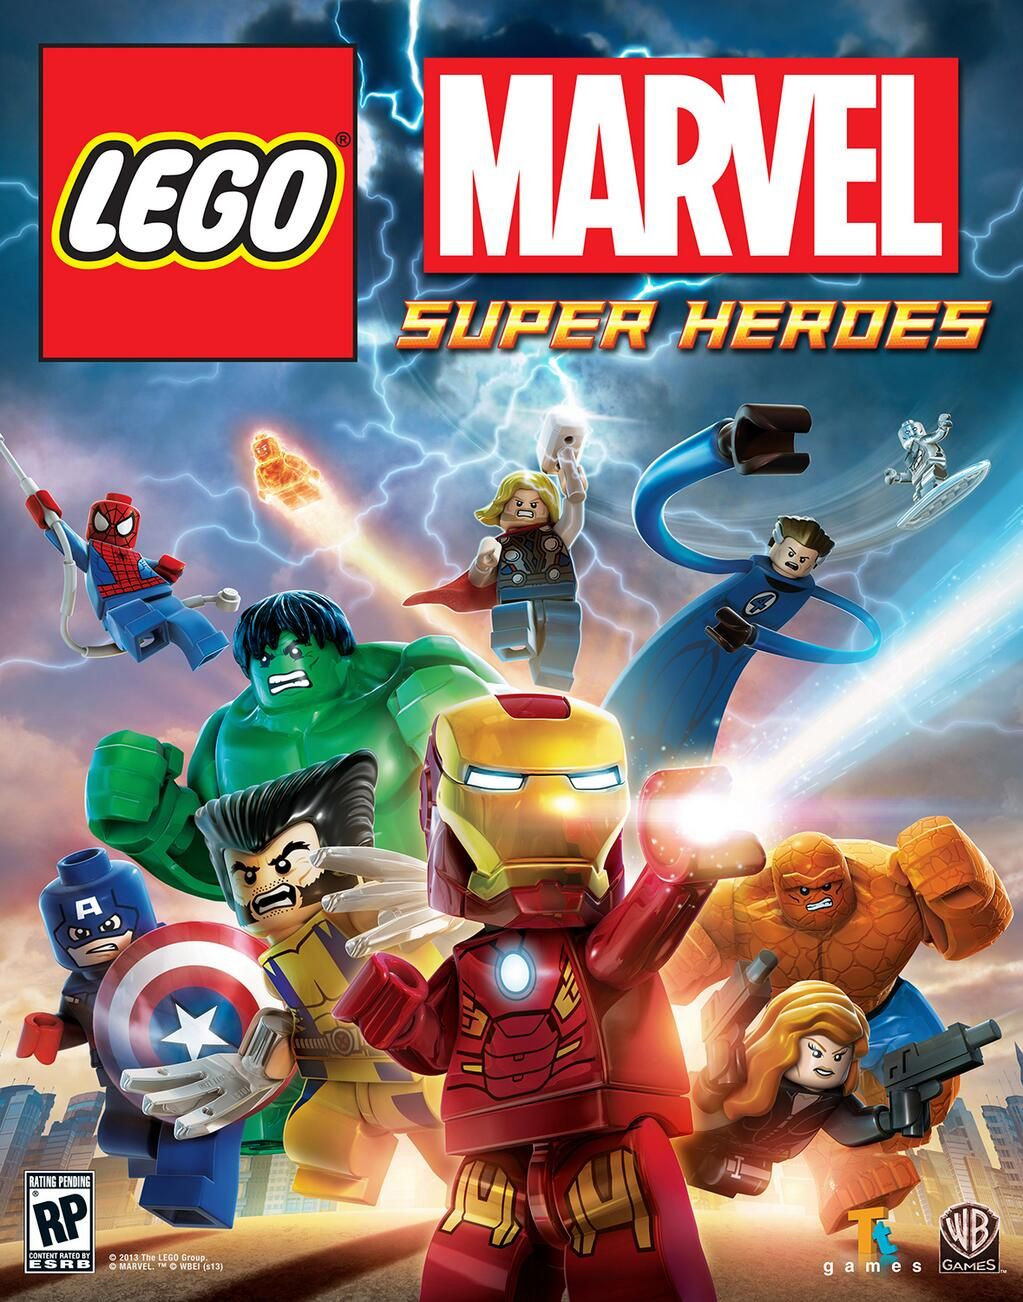 LEGO MARVEL Super Heroes-FLT LEGO_Marvel_Super_Heroes_box_art